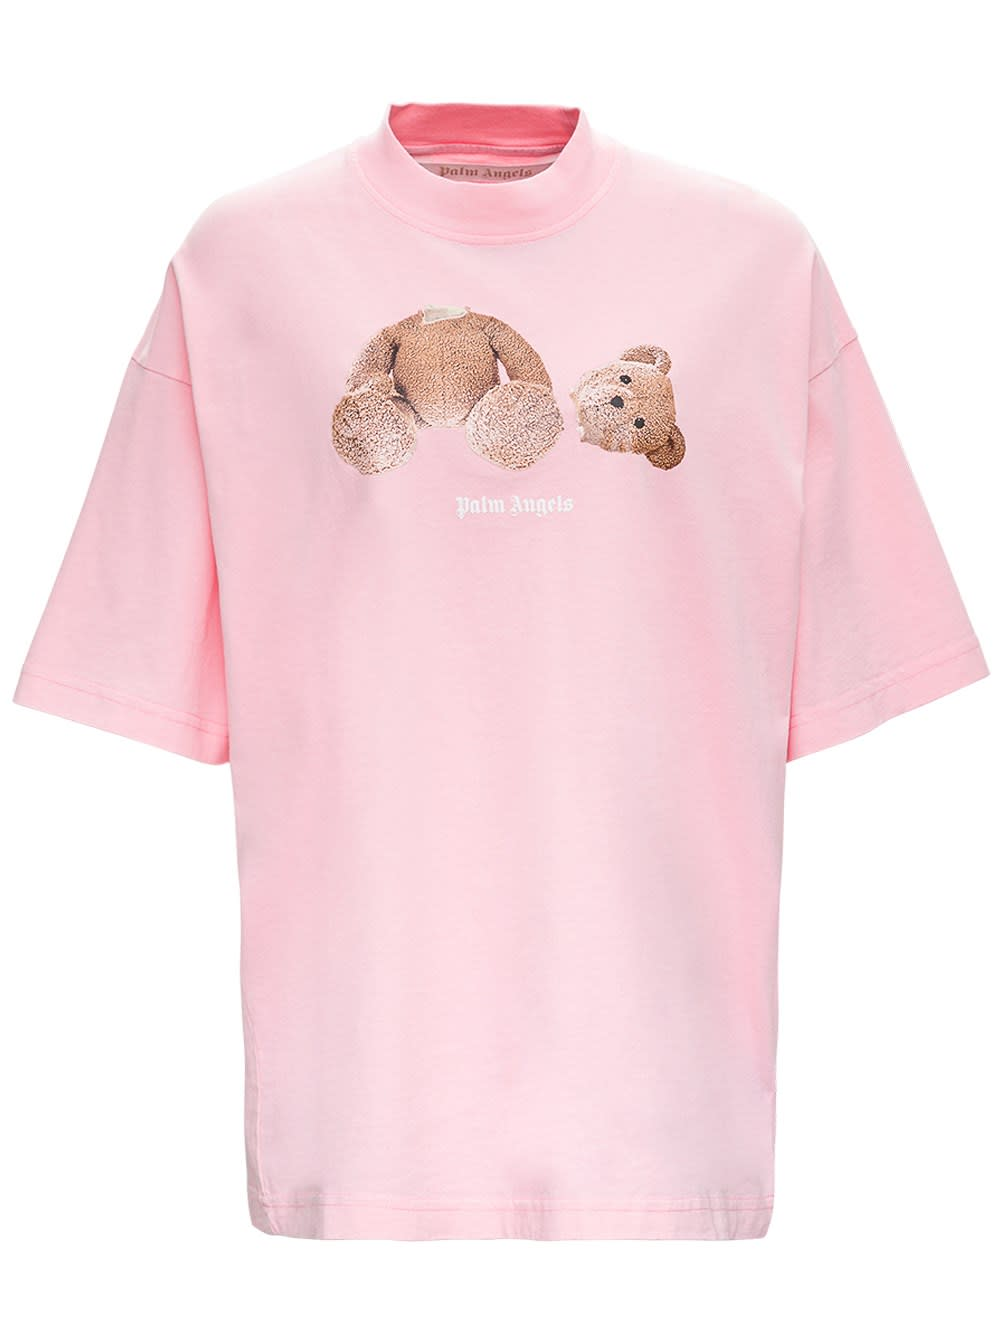 Palm Angels Cottons BEAR OVERSIZE T-SHIRT IN PINK JERSEY